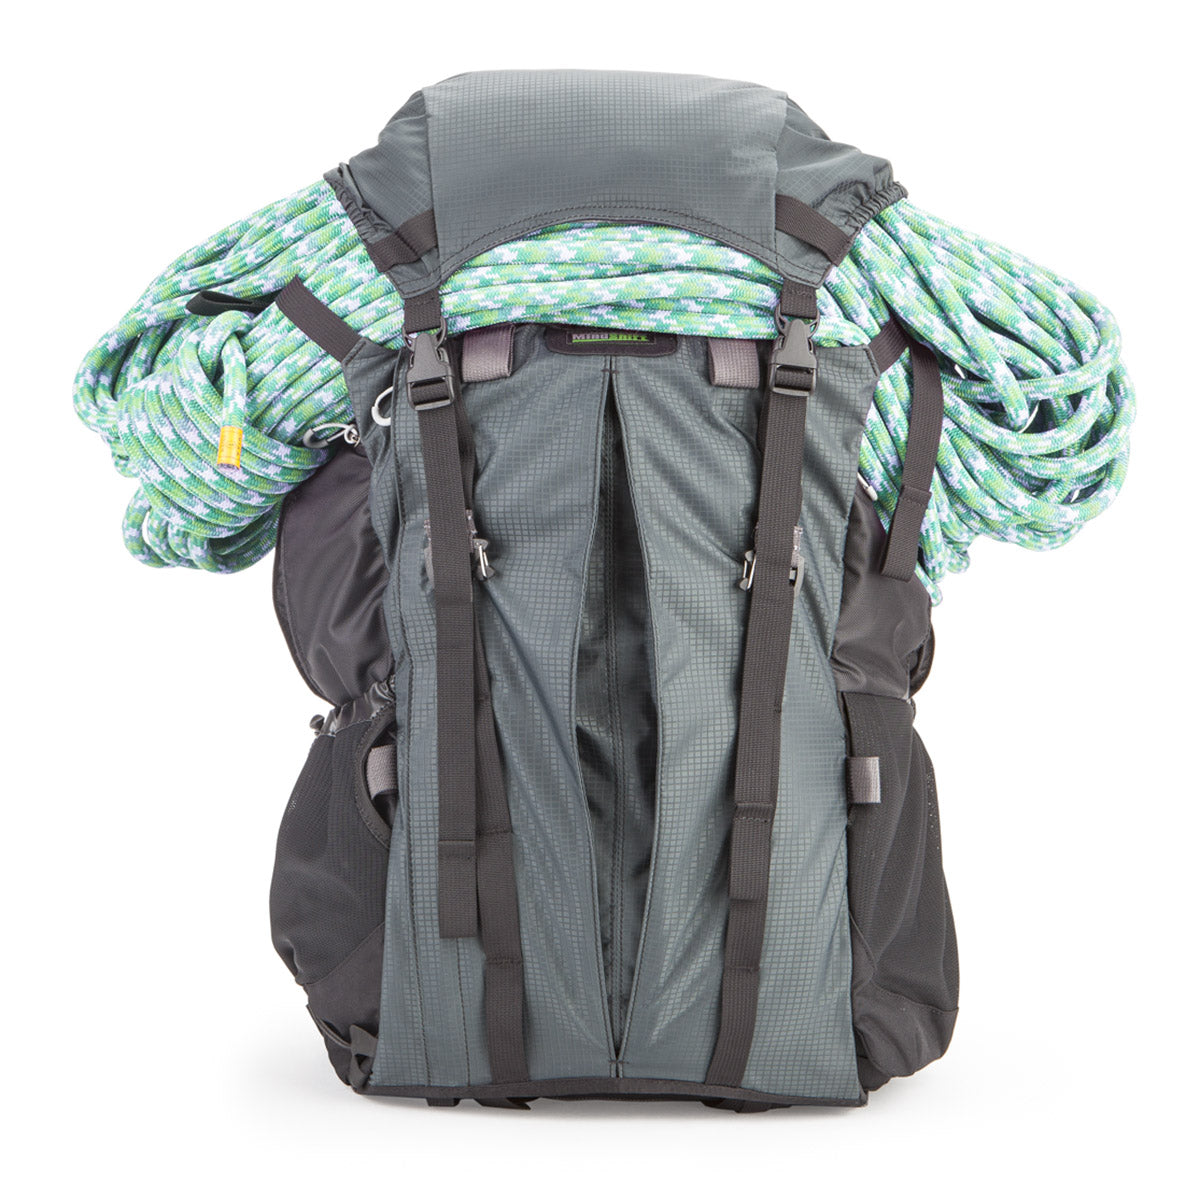 Rotation180 Camera Backpack Top Pocket Extra Storage